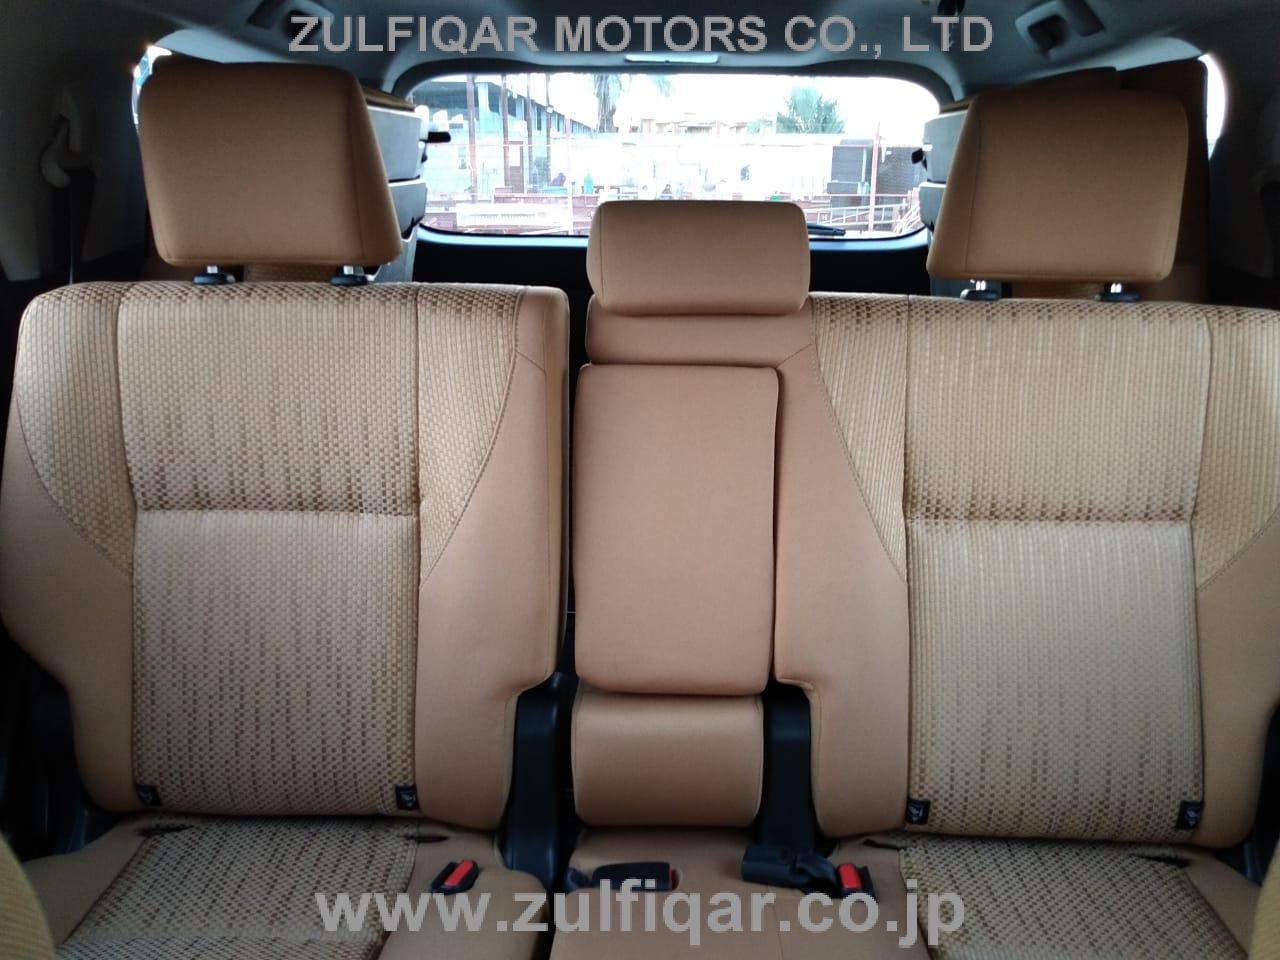 TOYOTA FORTUNER 2017 Image 10